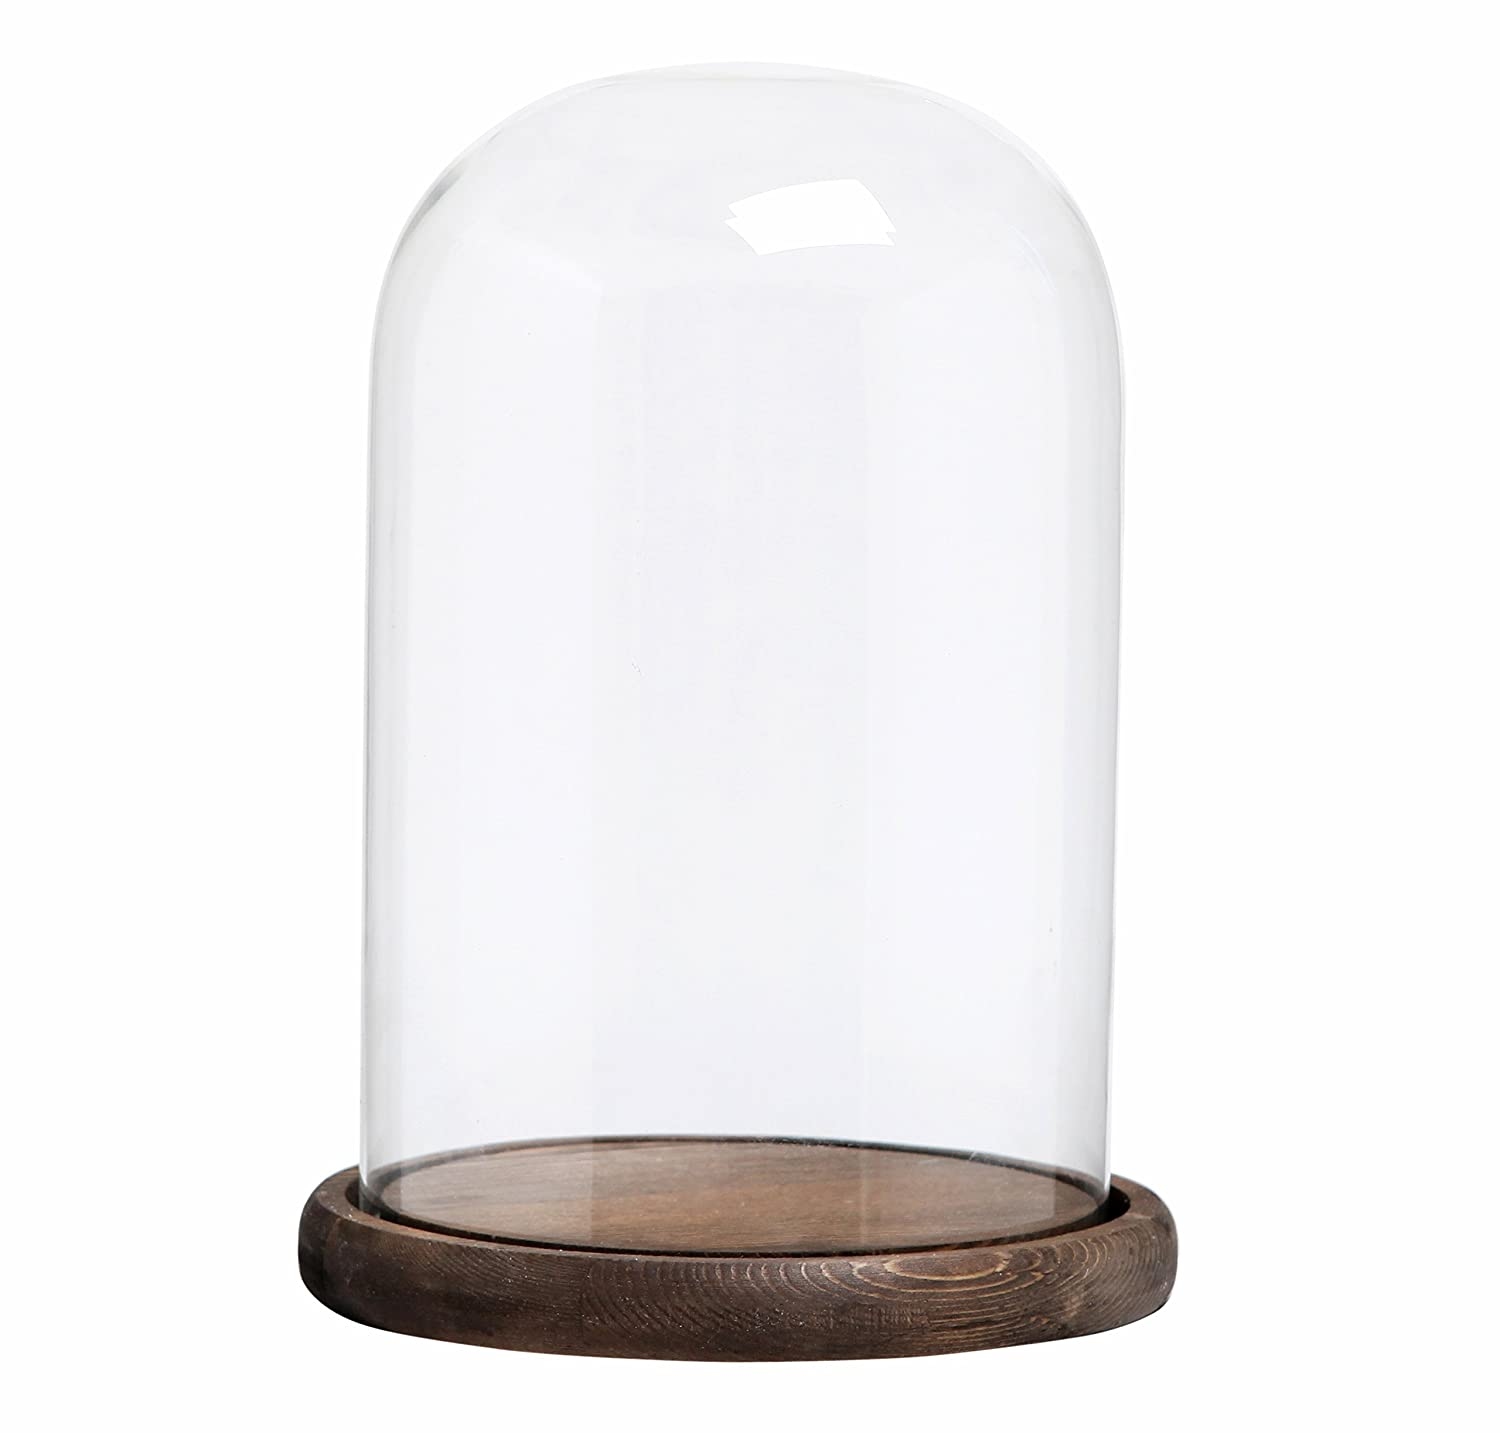 MyGift Decorative Clear Glass Cloche Bell Jar Display Case with Rustic Wood Base/Tabletop Centerpiece Dome, 10 X 7 Inches